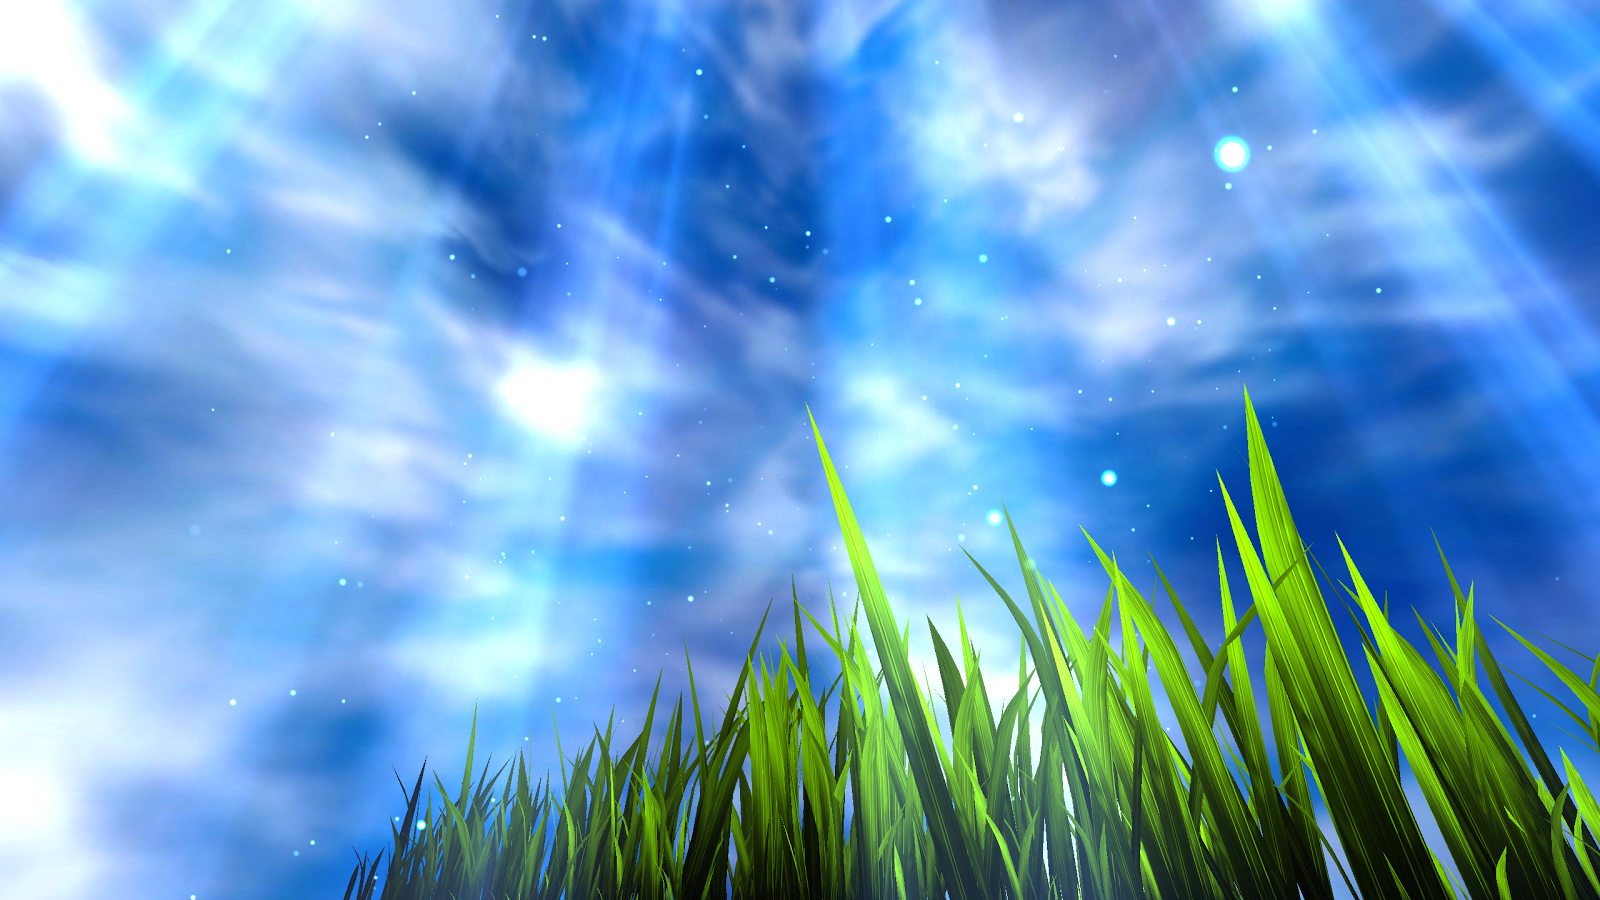 3d Grass Live Wallpaper 121 Apk Download Android Personalization